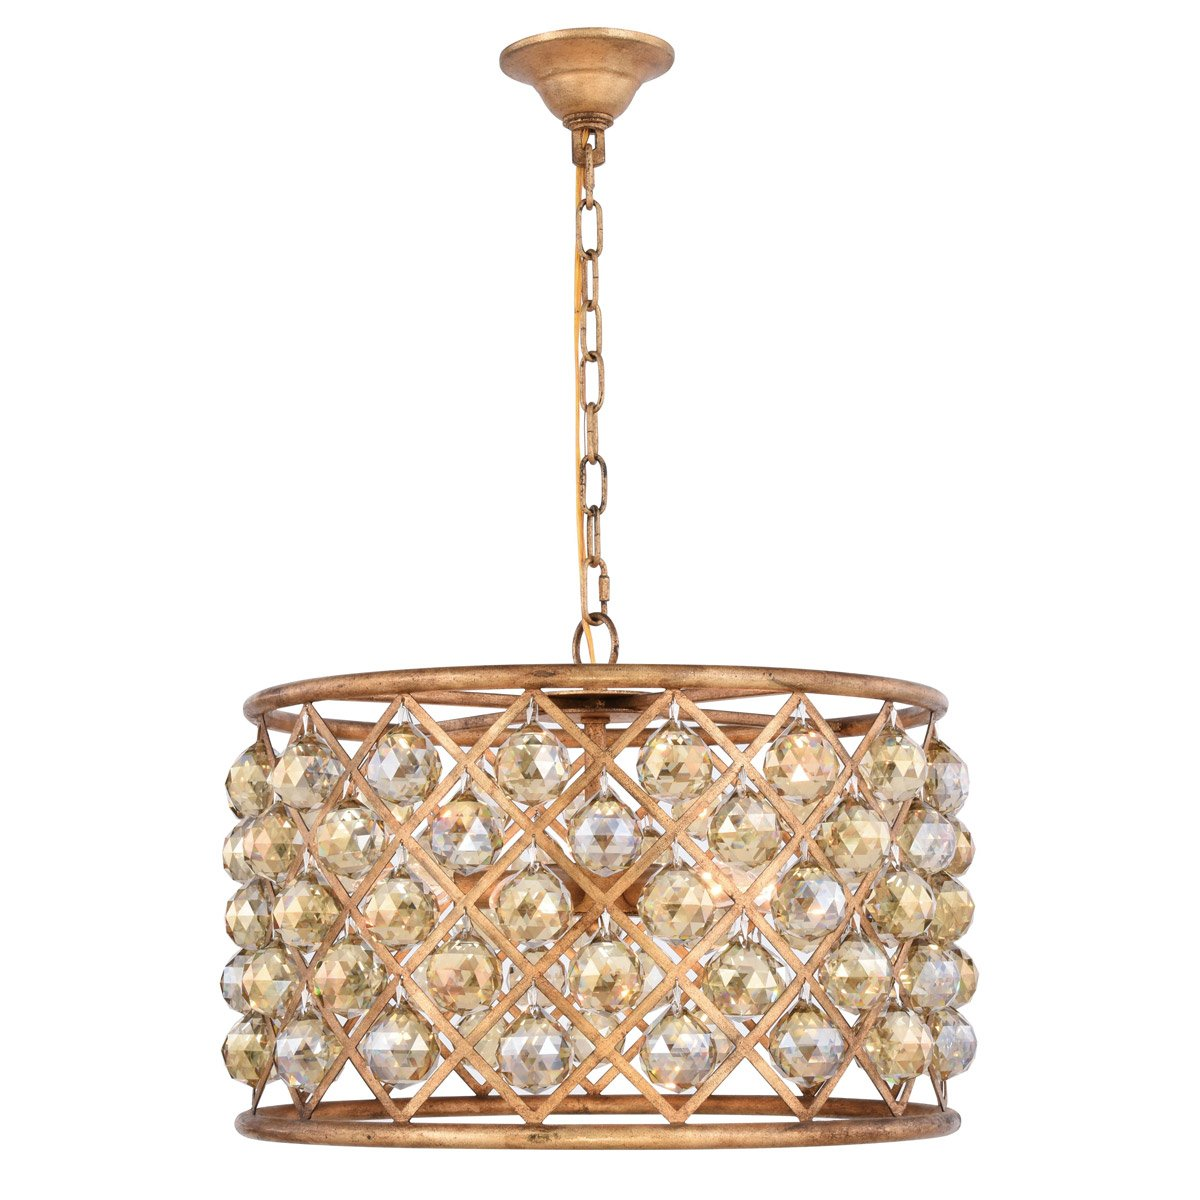 Madison 20 Crystal Pendant Chandelier With 6 Lights - Golden Iron Finish And Smokey Crystal Chandelier